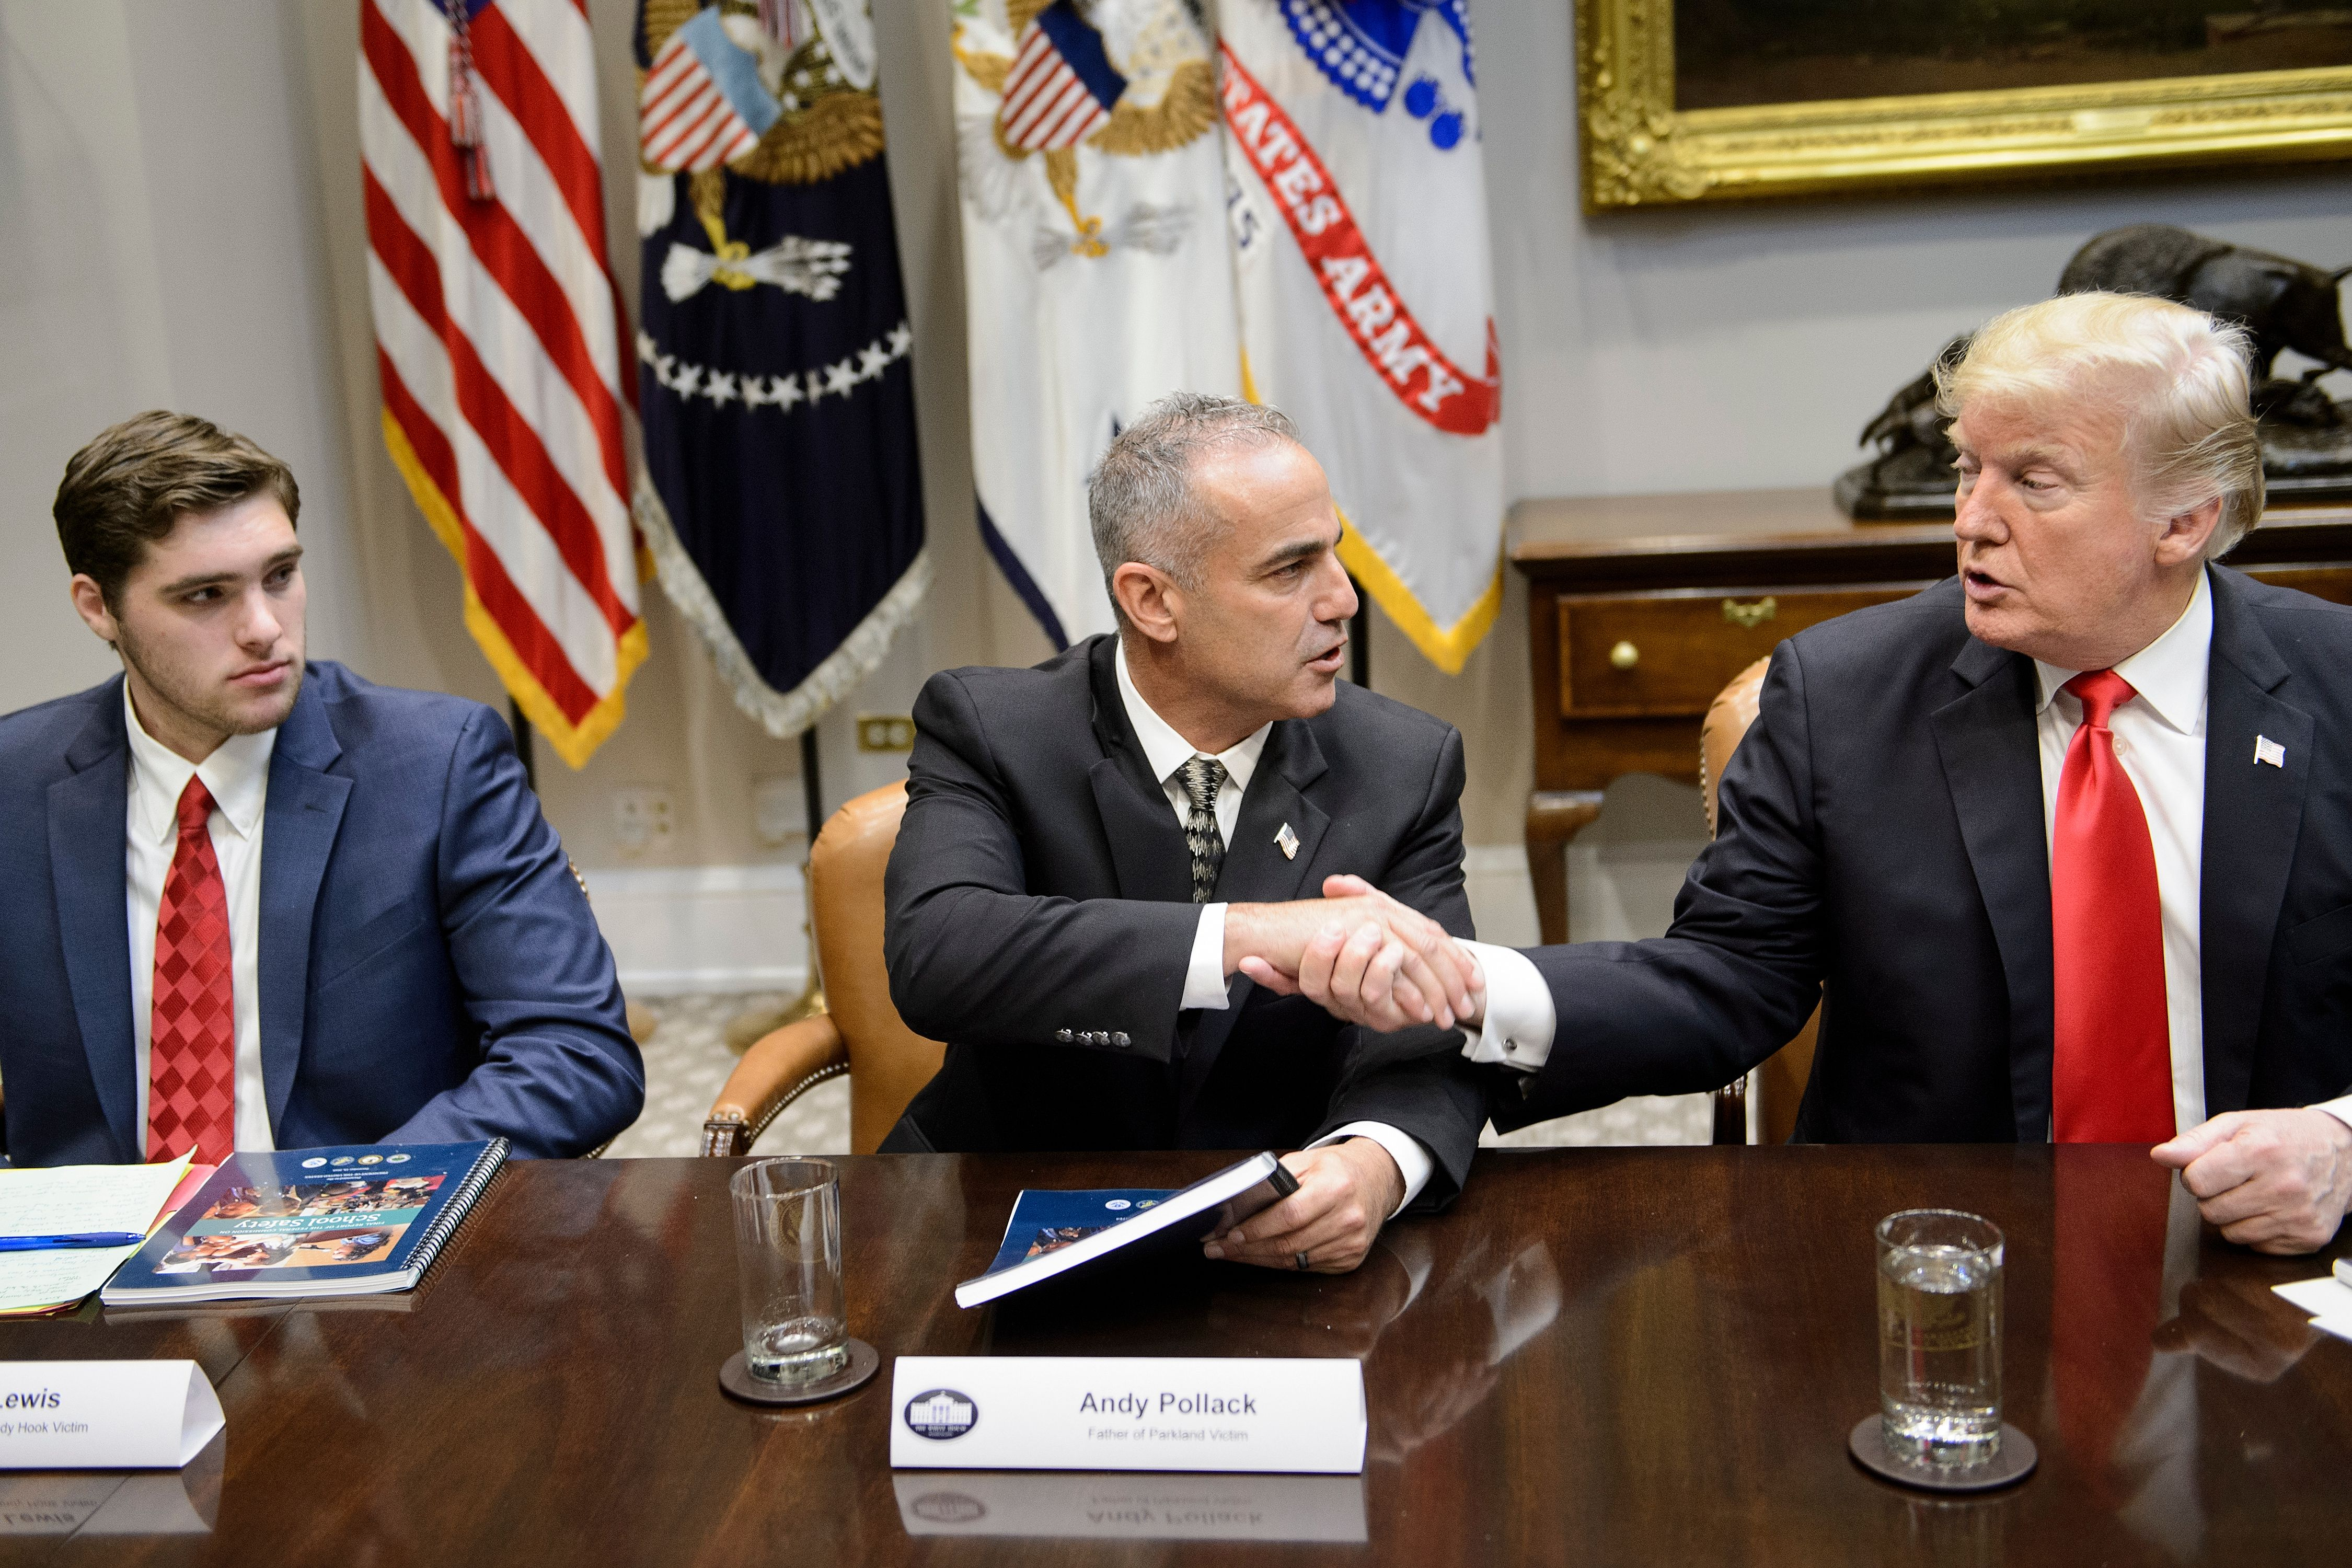 JT Lewis (L), brother of Sandy Hook mass shooting victim Jesse Lewis, watches as Andy Pollack (C), father of Parkland mass shooting victim Meadow Pollack, and US President Donald Trump shake hands during a roundtable discussion about school safety in the Roosevelt Room of the the White House December 18, 2018 in Washington, DC. (Photo by BRENDAN SMIALOWSKI/AFP/Getty Images)